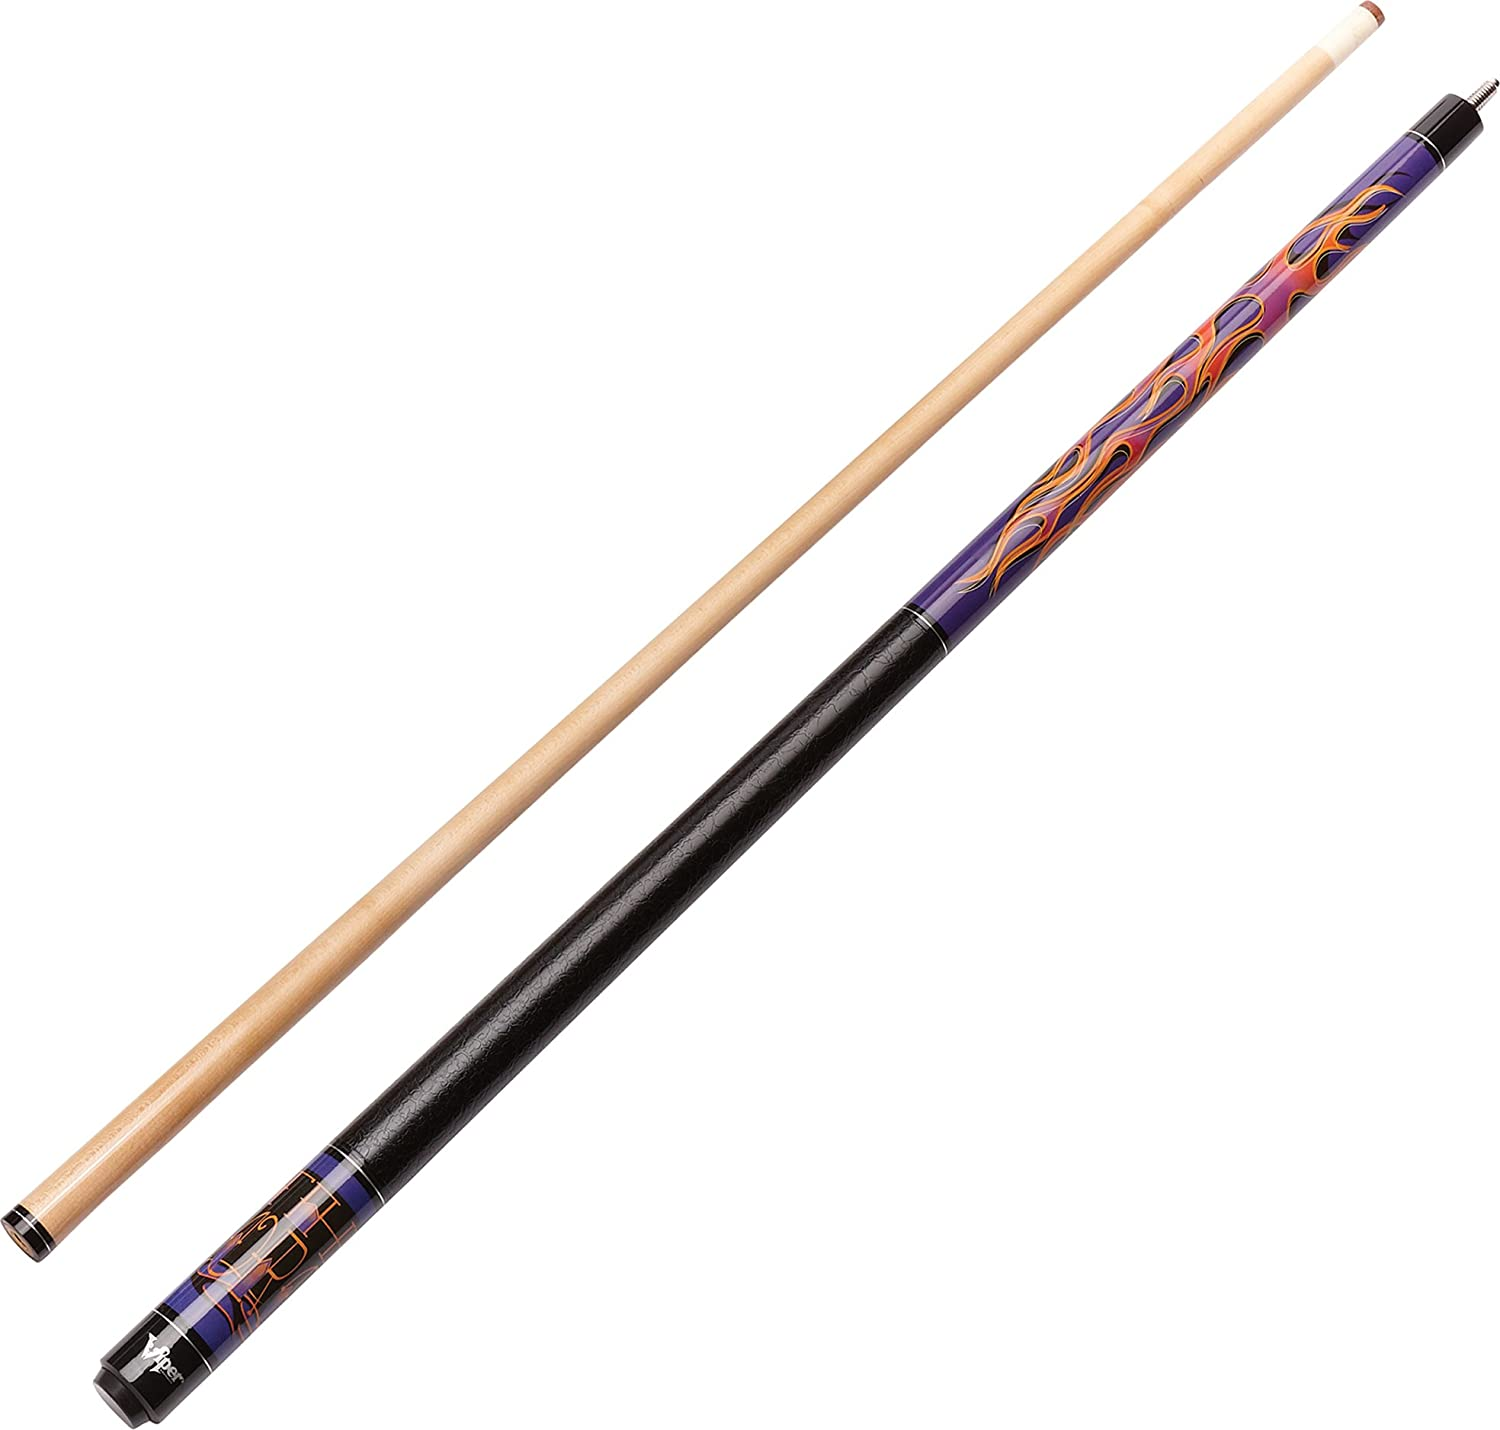 Viper Underground 58 2-Piece Billiard/Pool Cue, The Torch Viper by GLD Products 50-0656-18-P